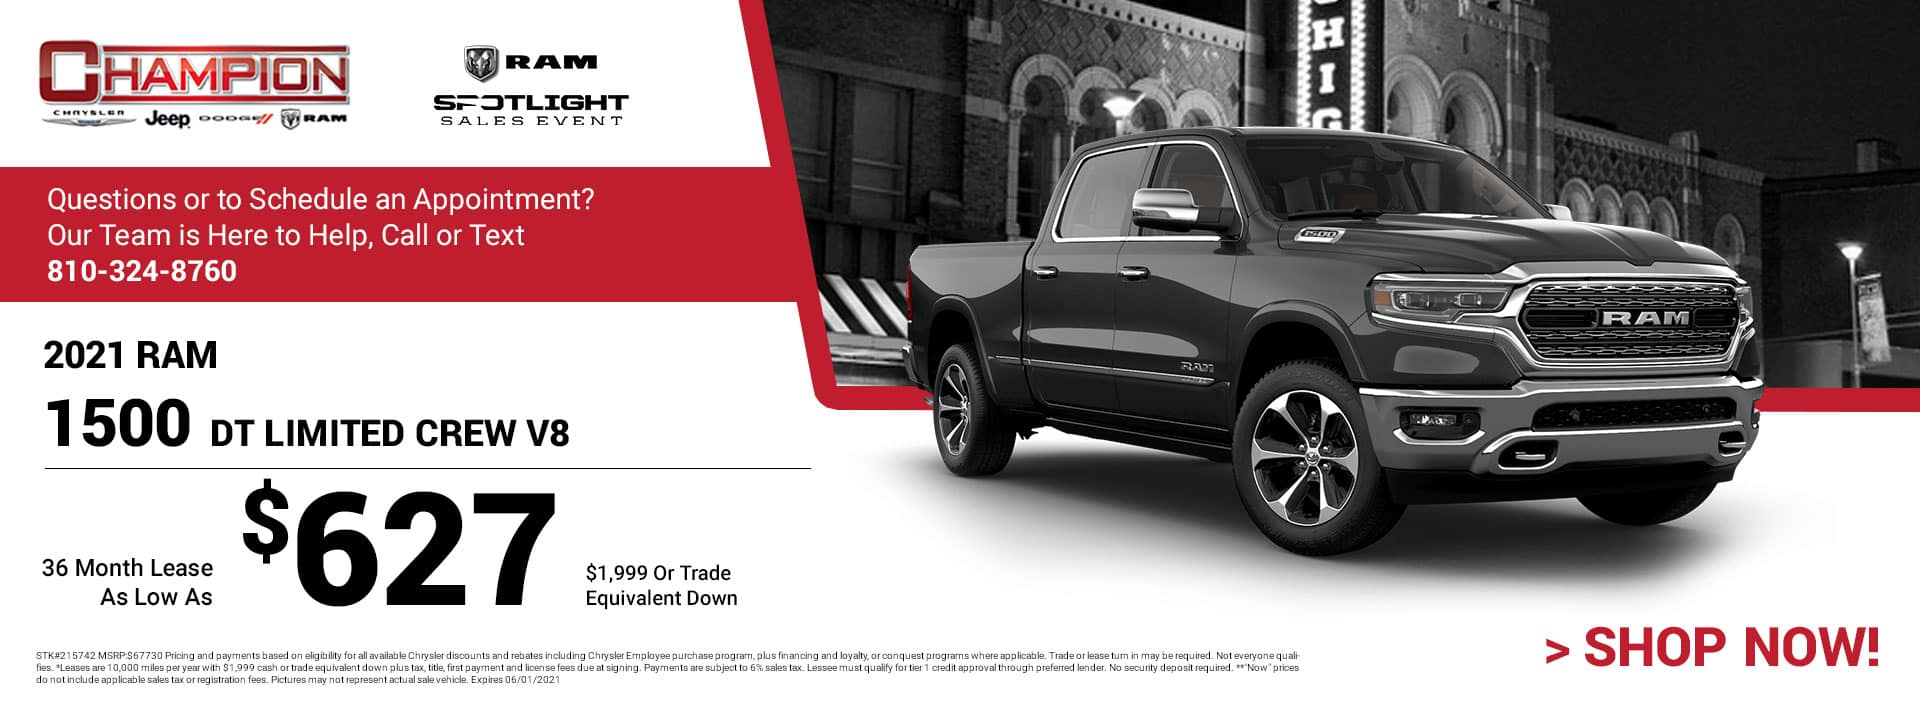 2021 Ram 1500 DT Limited Crew V8 215742 $67,730 $1,999 or Trade Equivalent Down 36 $627